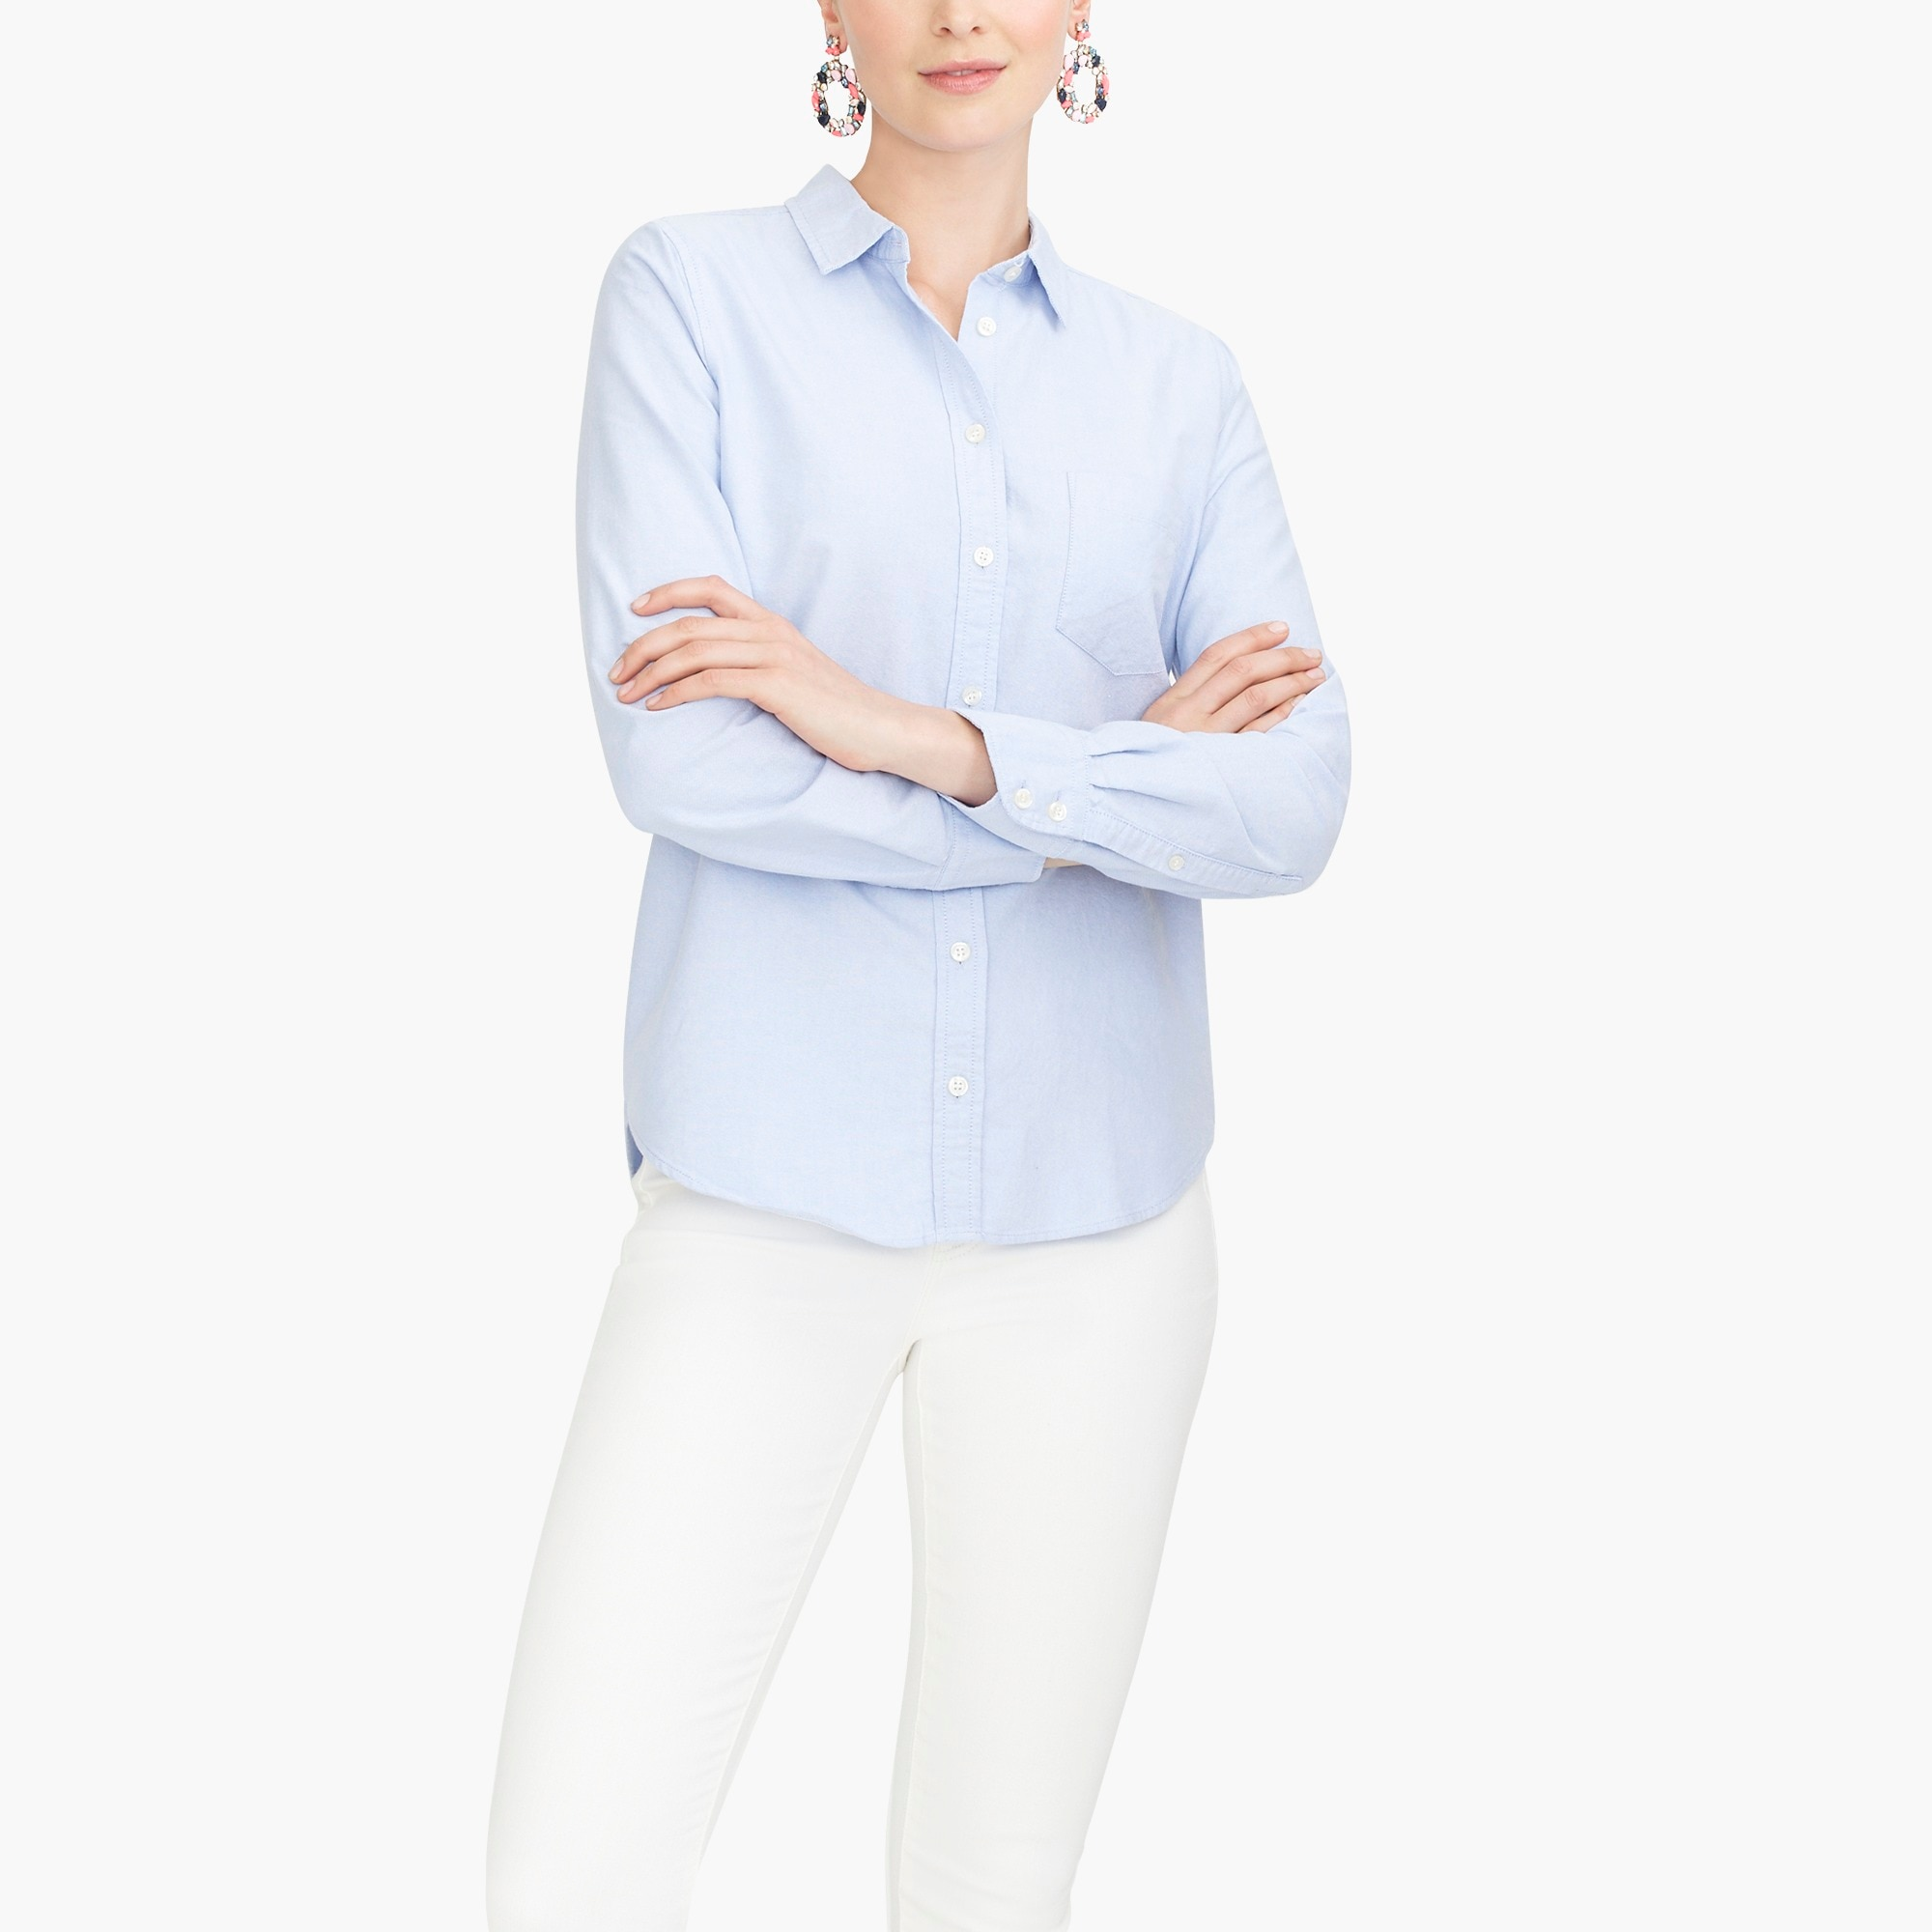 j.crew mercantile oxford shirt : factorywomen button-ups